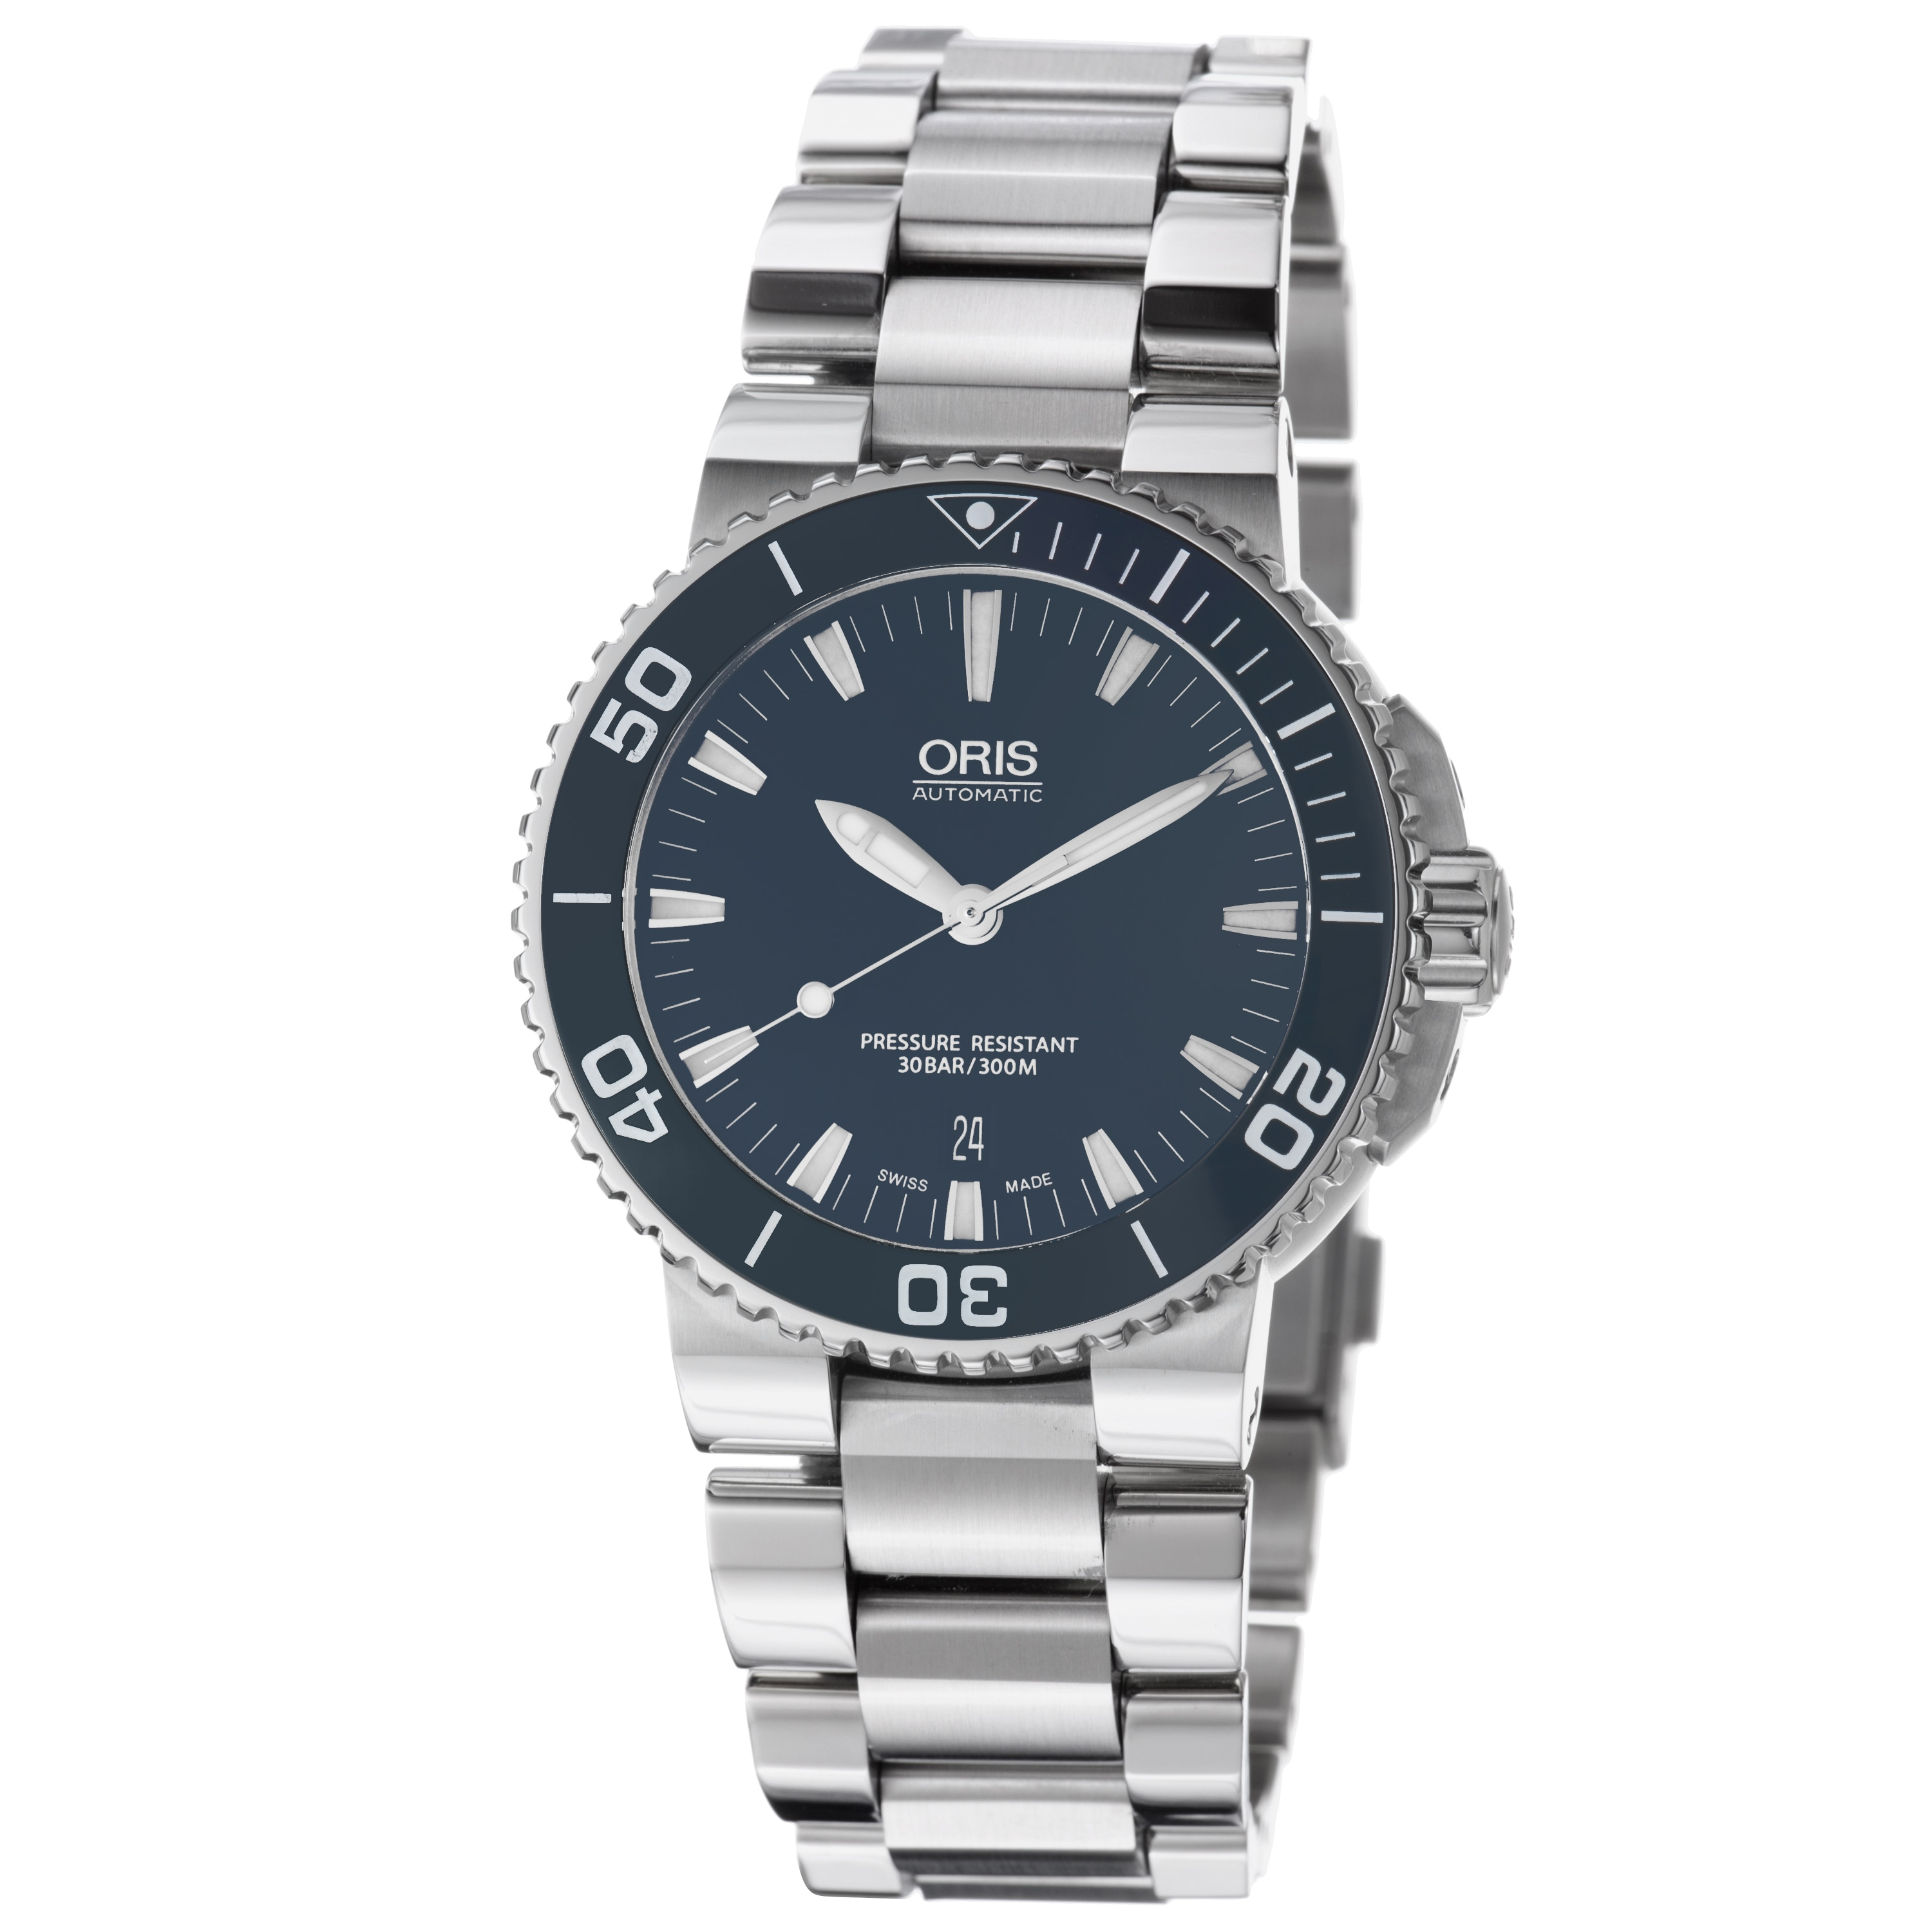 Oris Men's 01 733 7653 4155-07 8 26 01PEB 'Aquis Date' Blue Dial Stainless Steel Automatic Watch